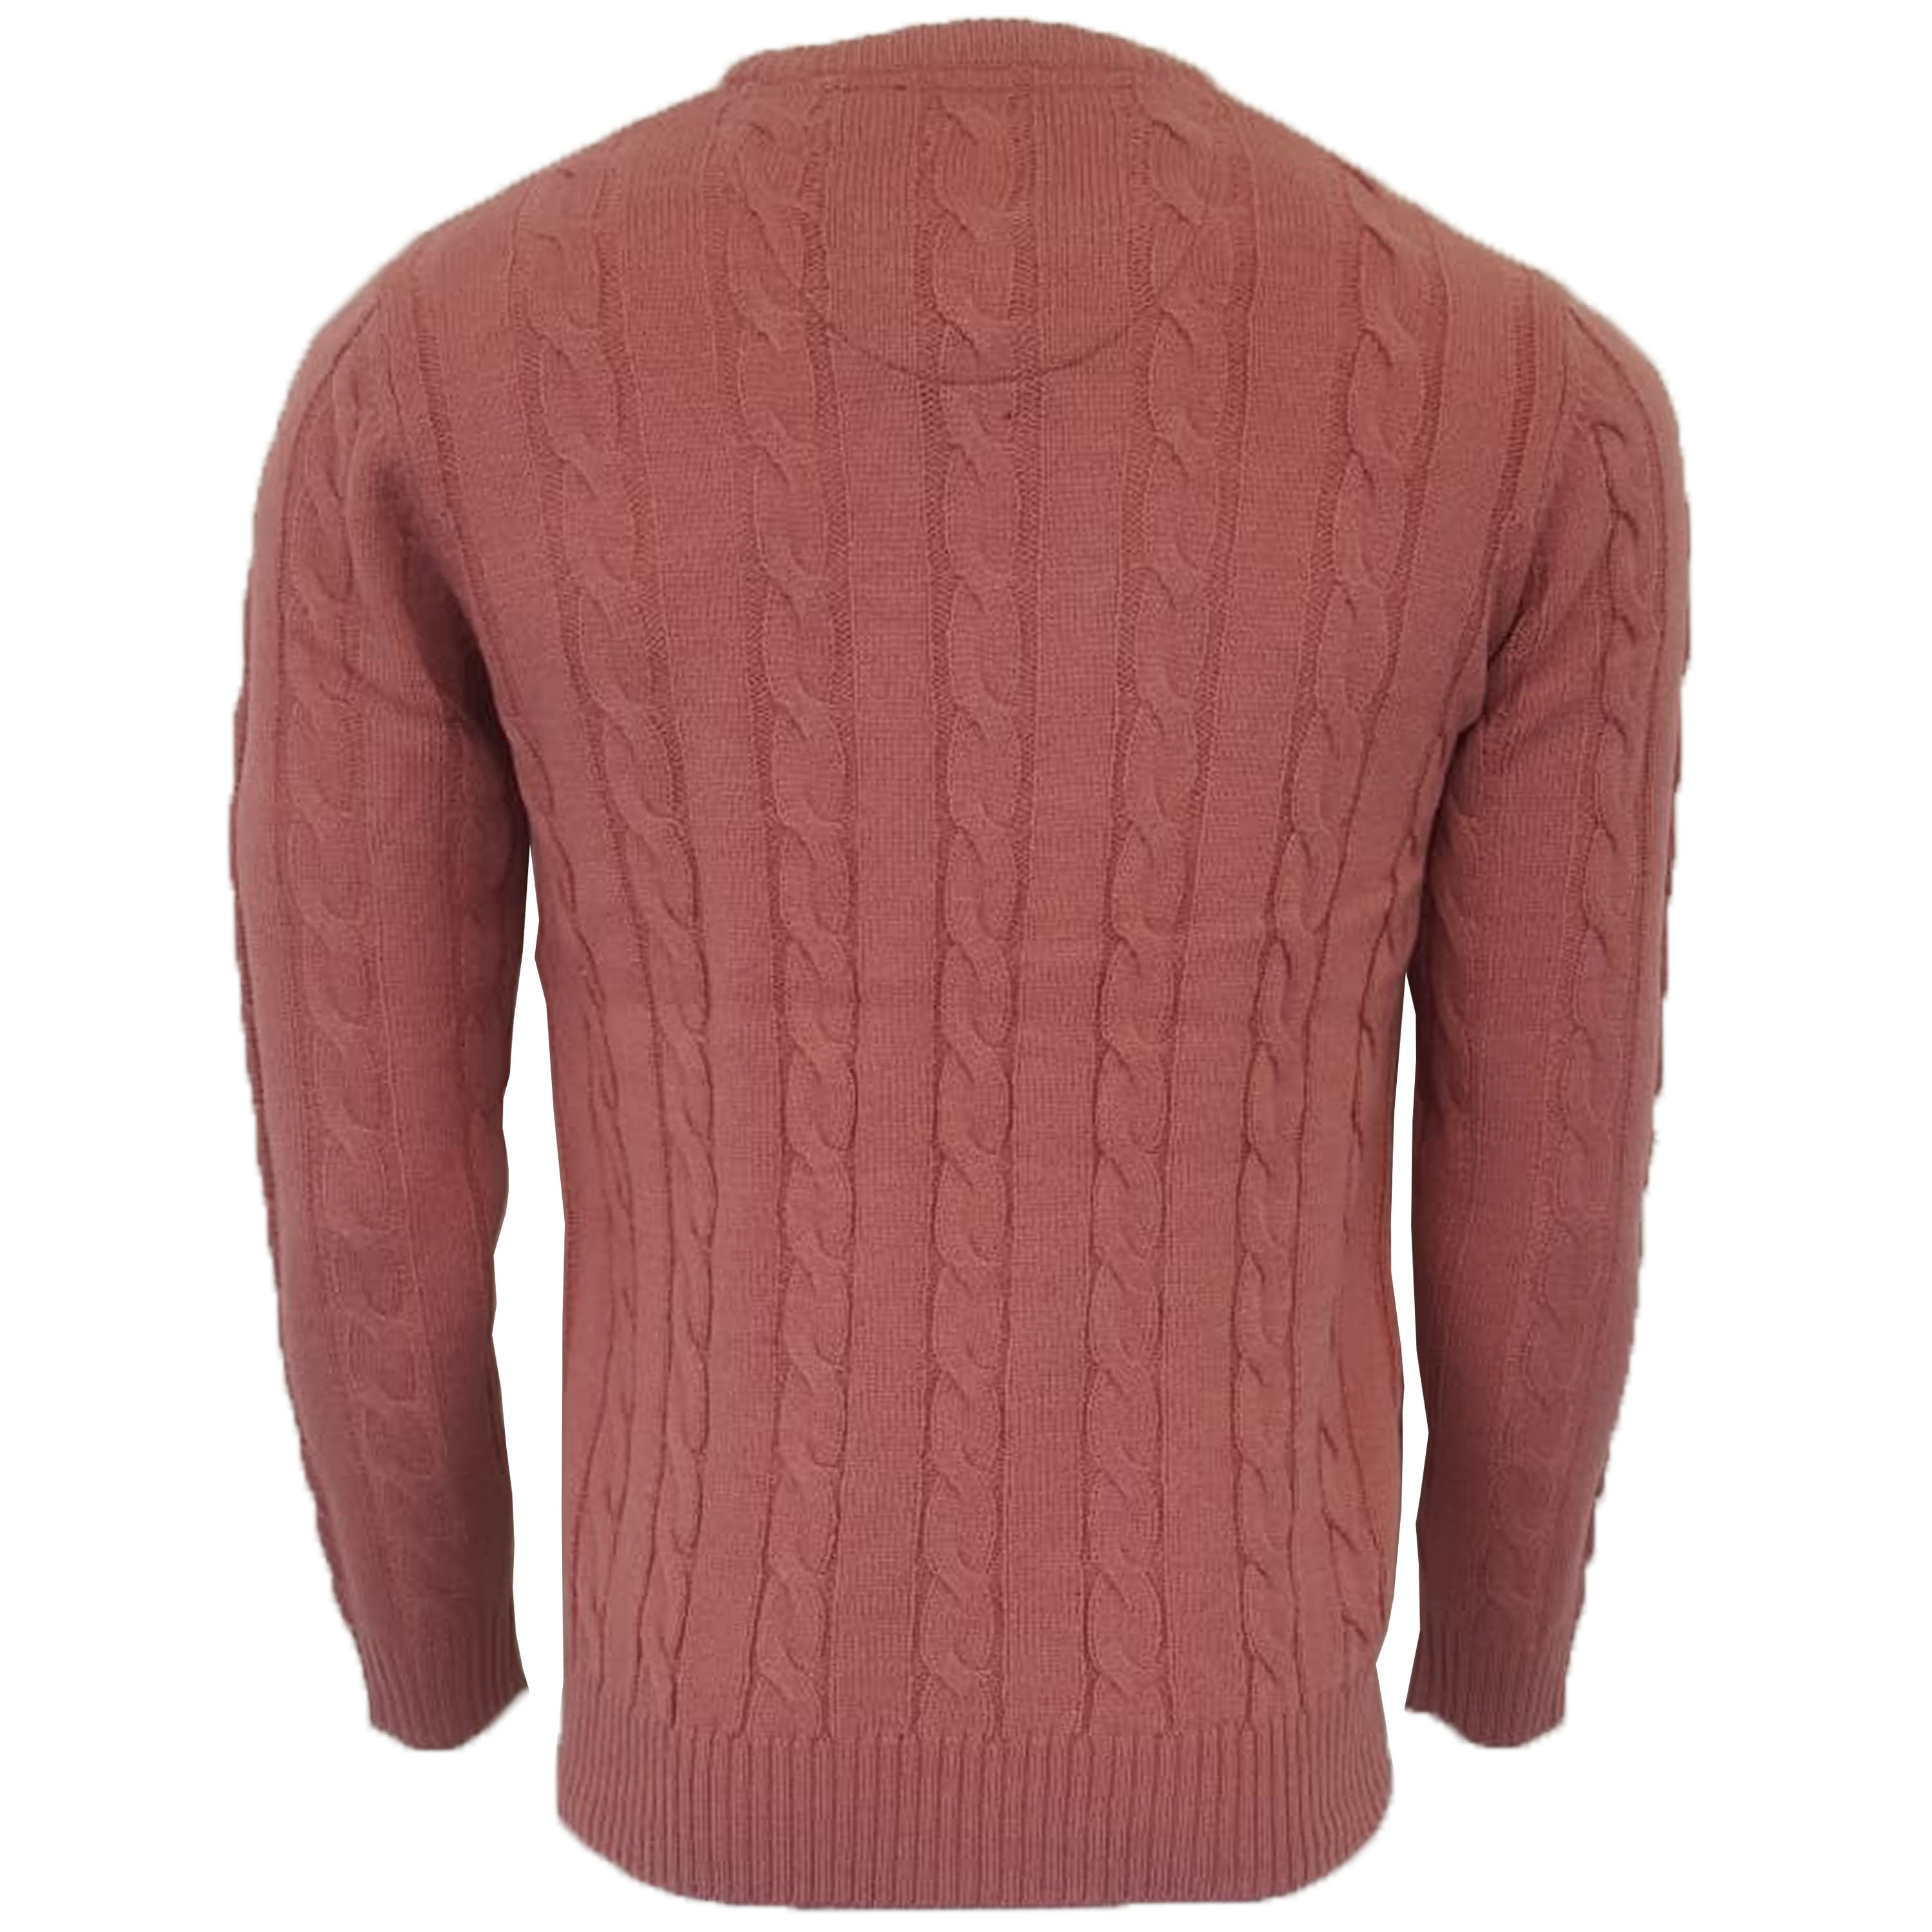 Mens-Jumper-Brave-Soul-Knitted-Sweater-Pullover-GOODWIN-Crew-Neck-Top-Winter-New thumbnail 21